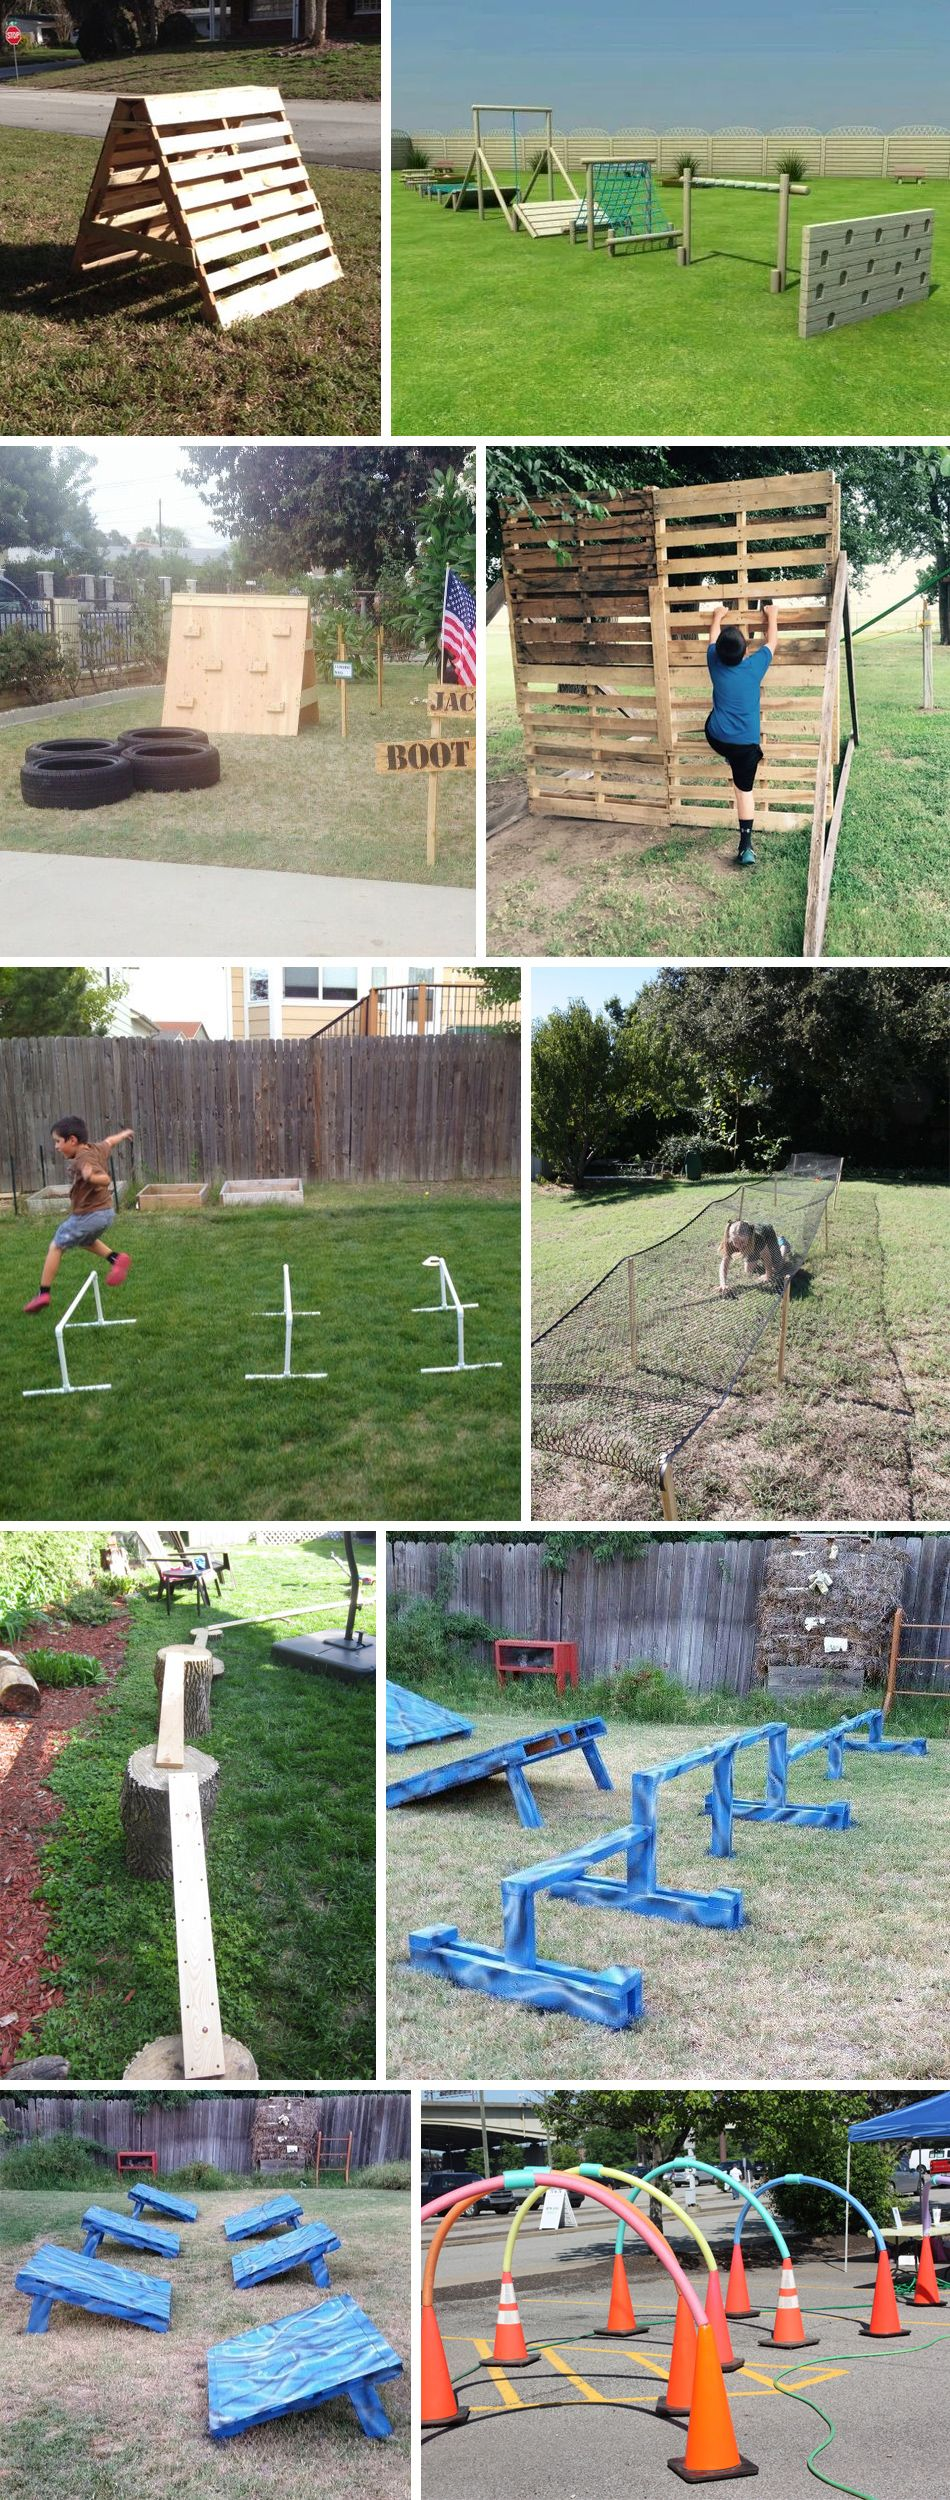 Diy Obstacles Backyard Obstacle Course Kids Obstacle Course American Ninja Warrior Backyard diy obstacle course